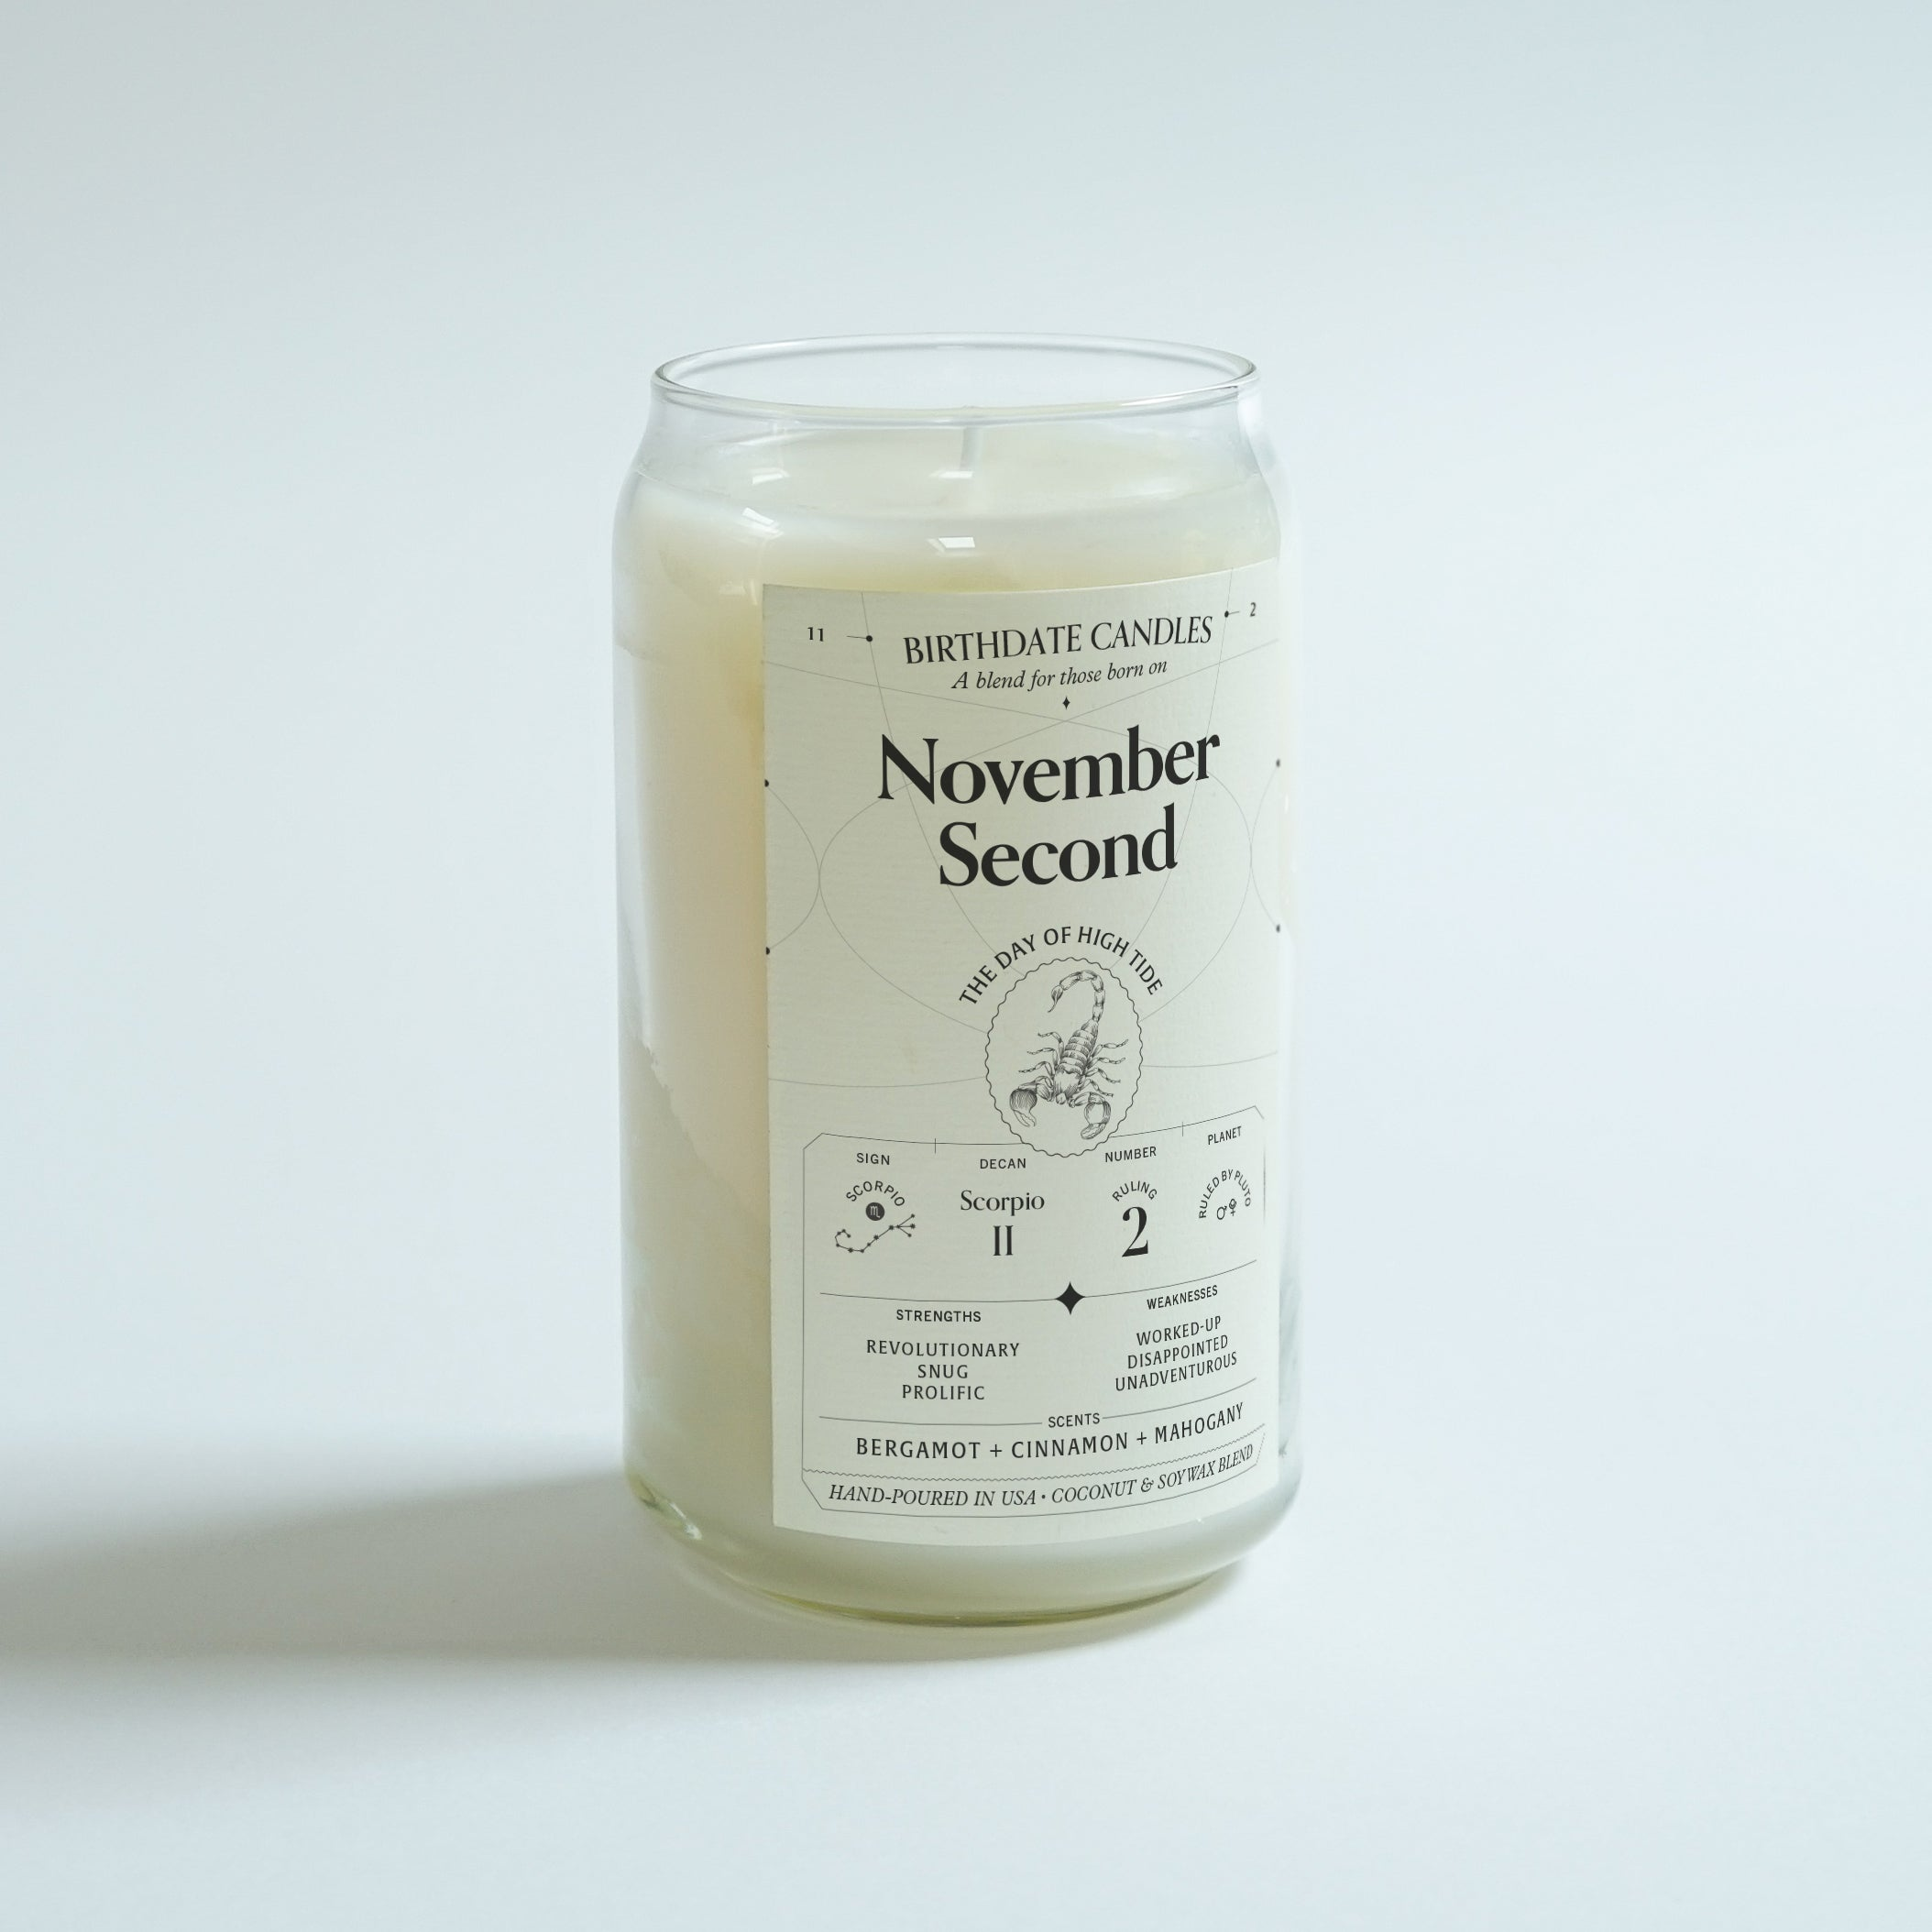 The November Second Candle